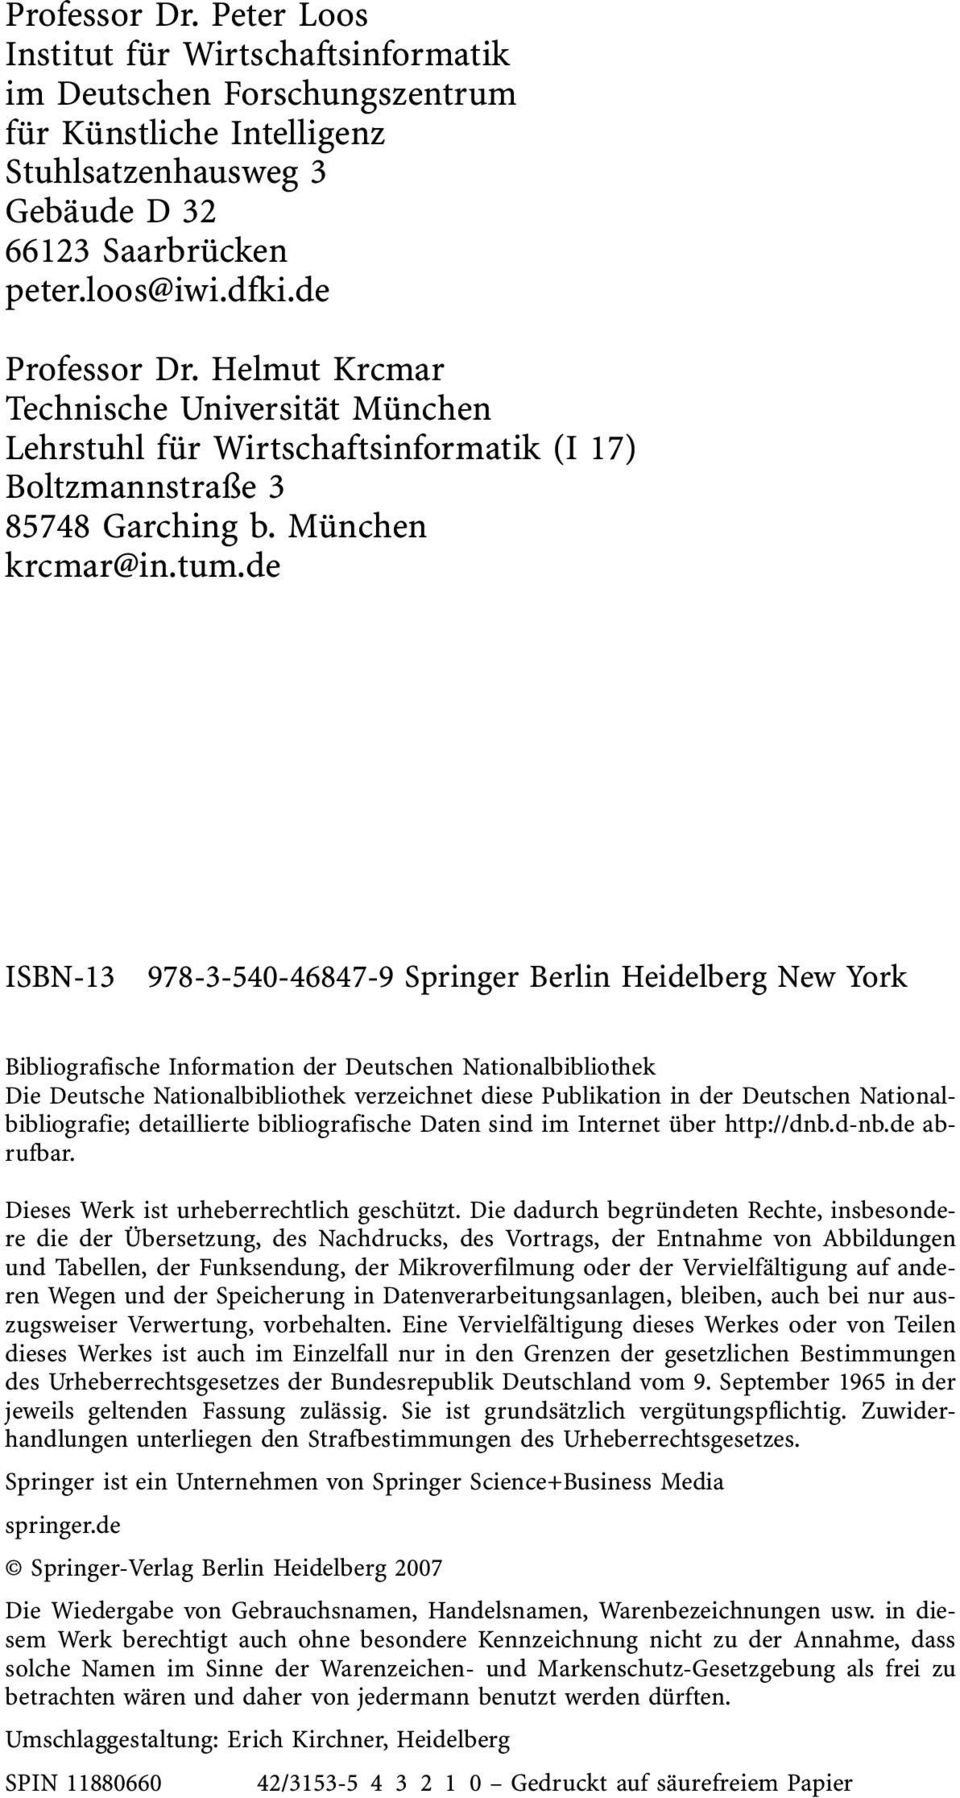 de ISBN-13 978-3-540-46847-9 Springer Berlin Heidelberg New York Bibliografische Information der Deutschen Nationalbibliothek Die Deutsche Nationalbibliothek verzeichnet diese Publikation in der